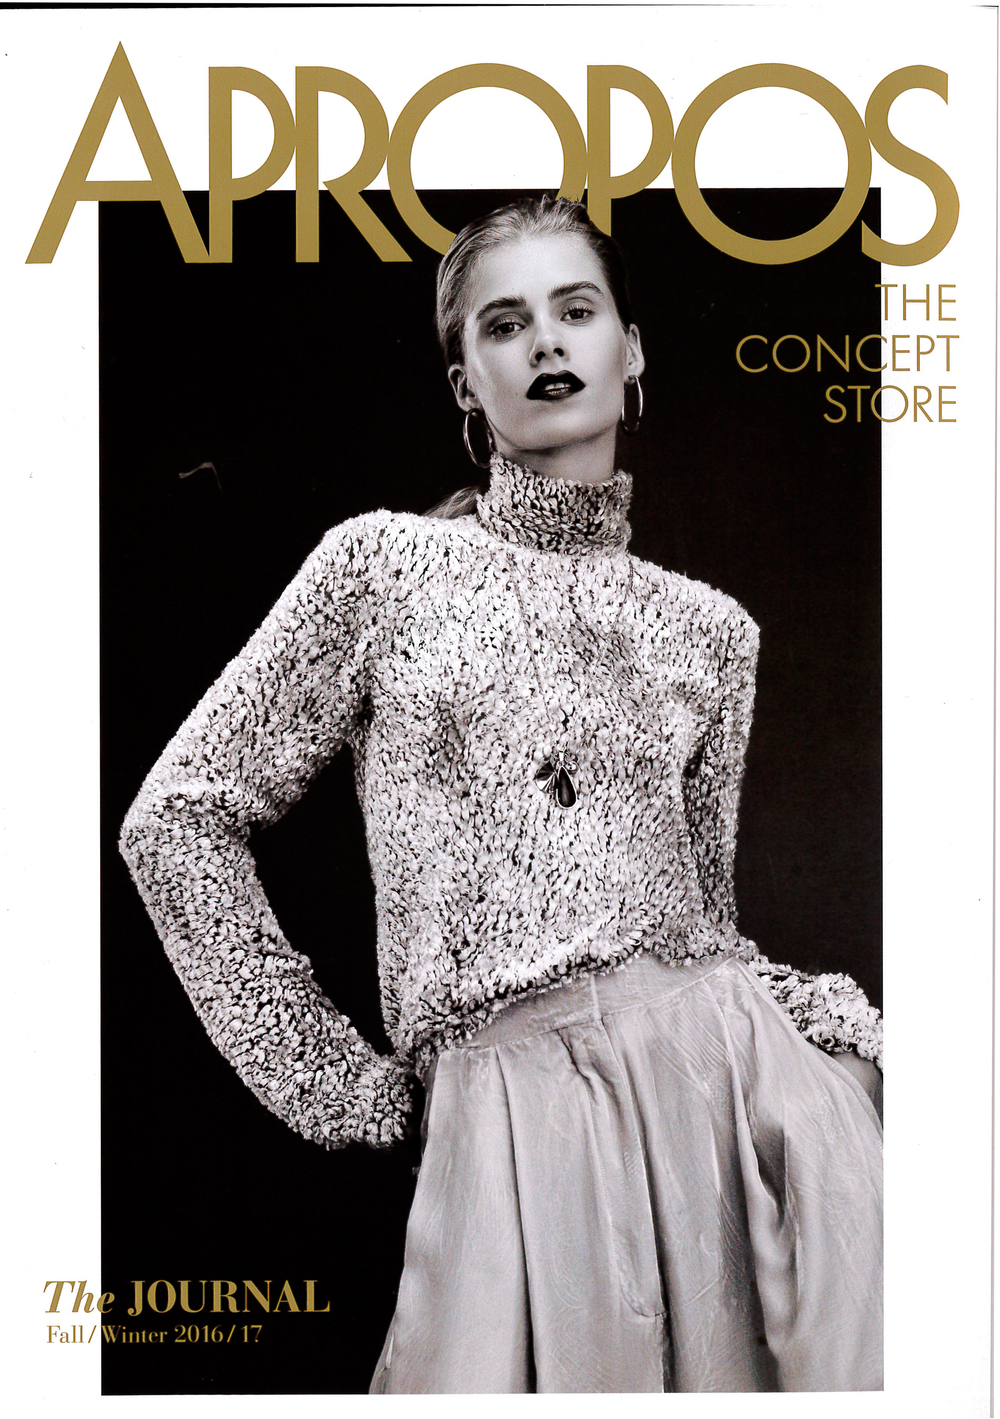 APROPOS, The JOURNAL, Fall/Winter 2016/17, Cover, THE CONCEPT STORE